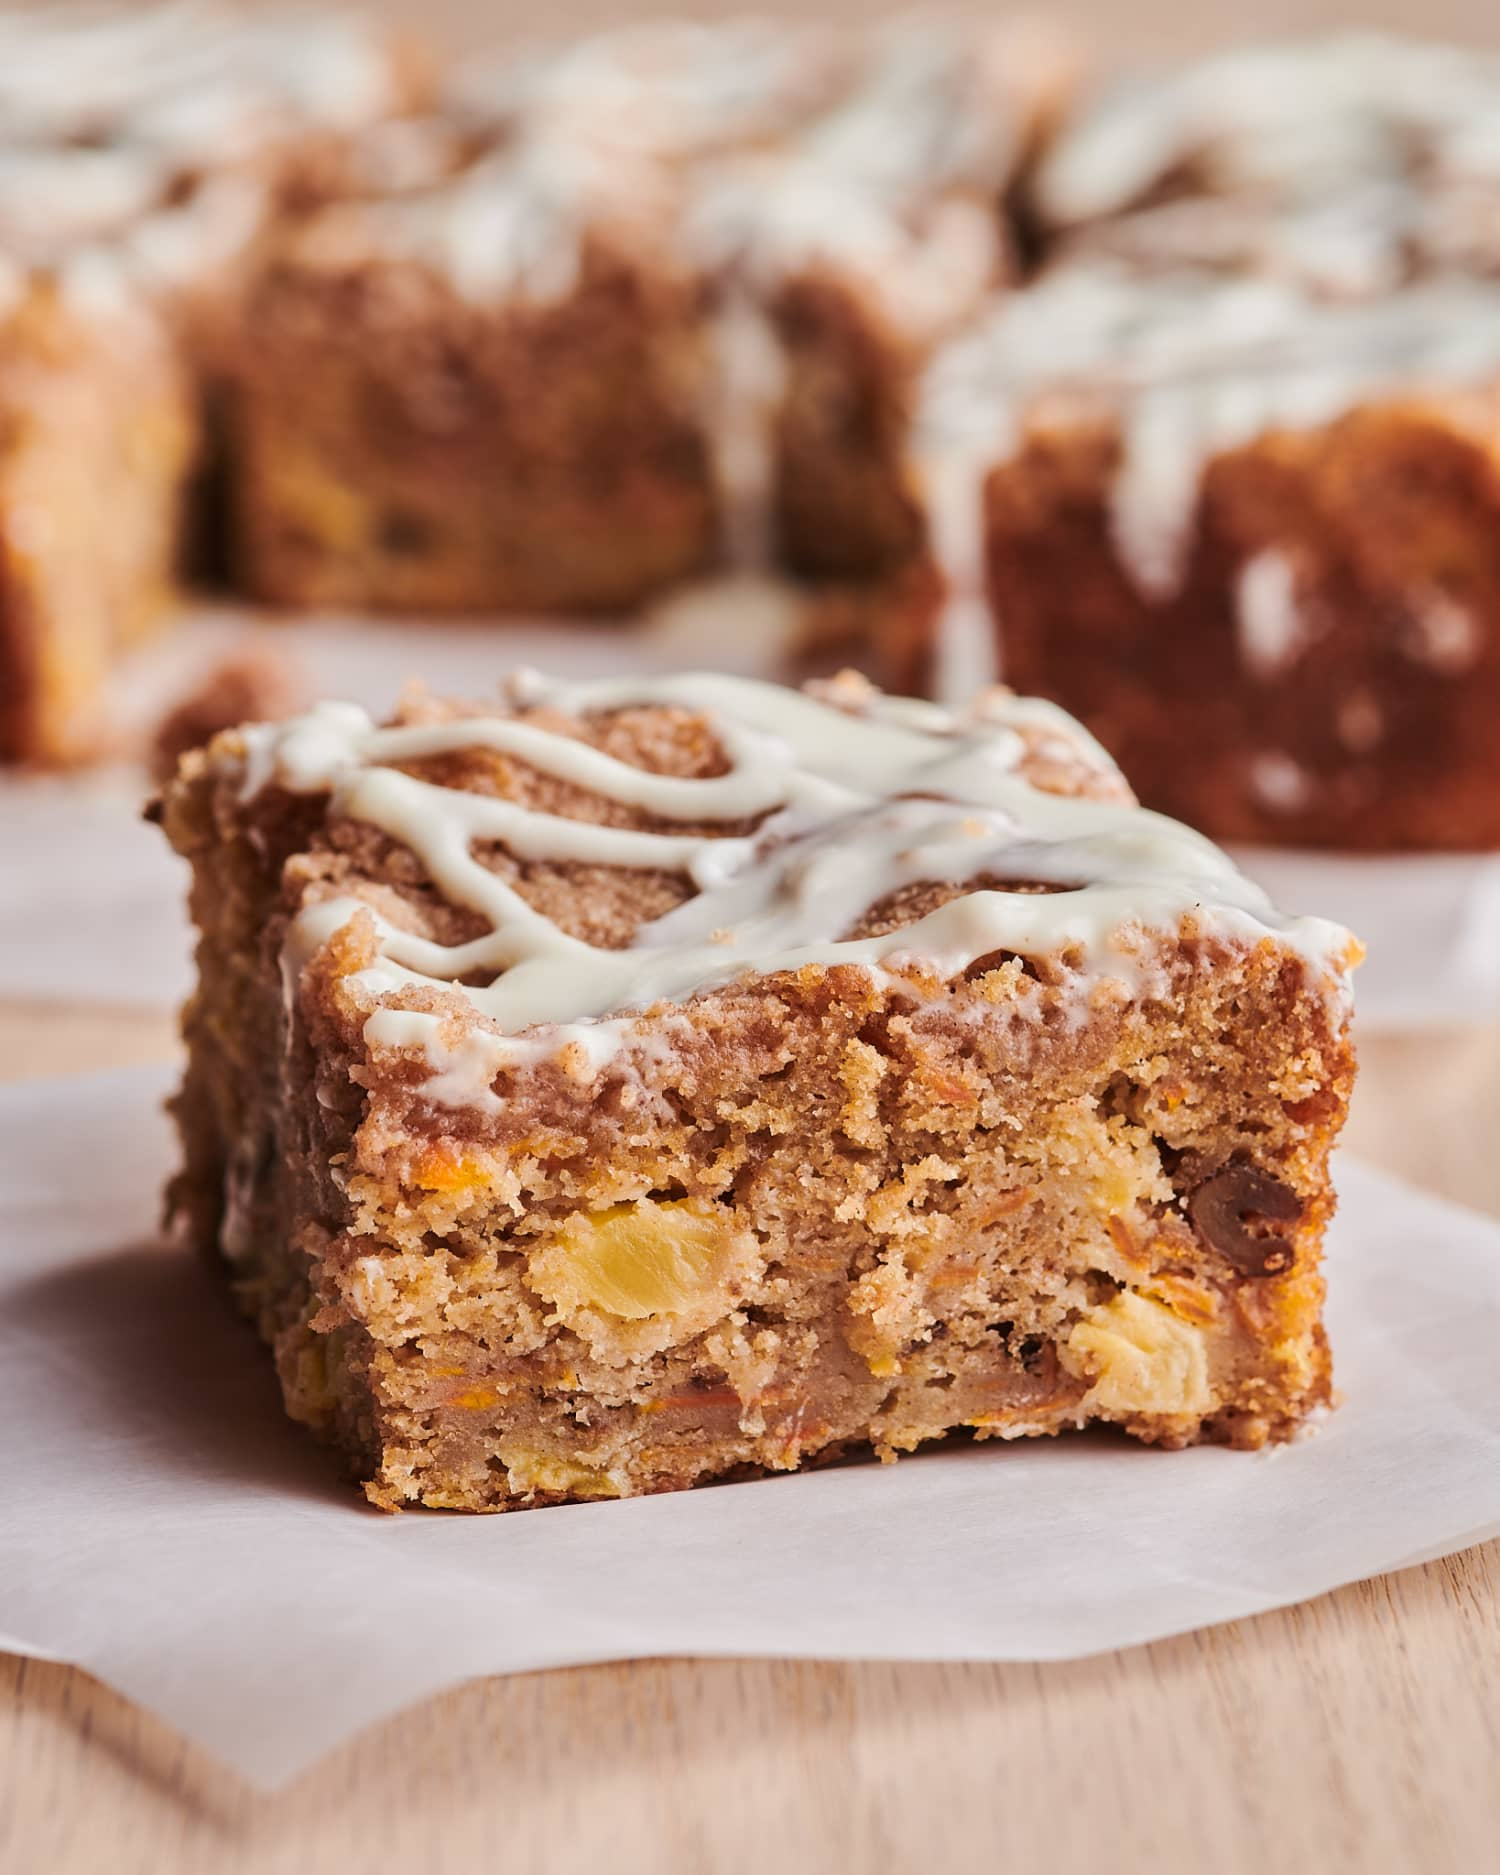 Is It Carrot Cake or Coffee Cake? The Answer Is Yes.